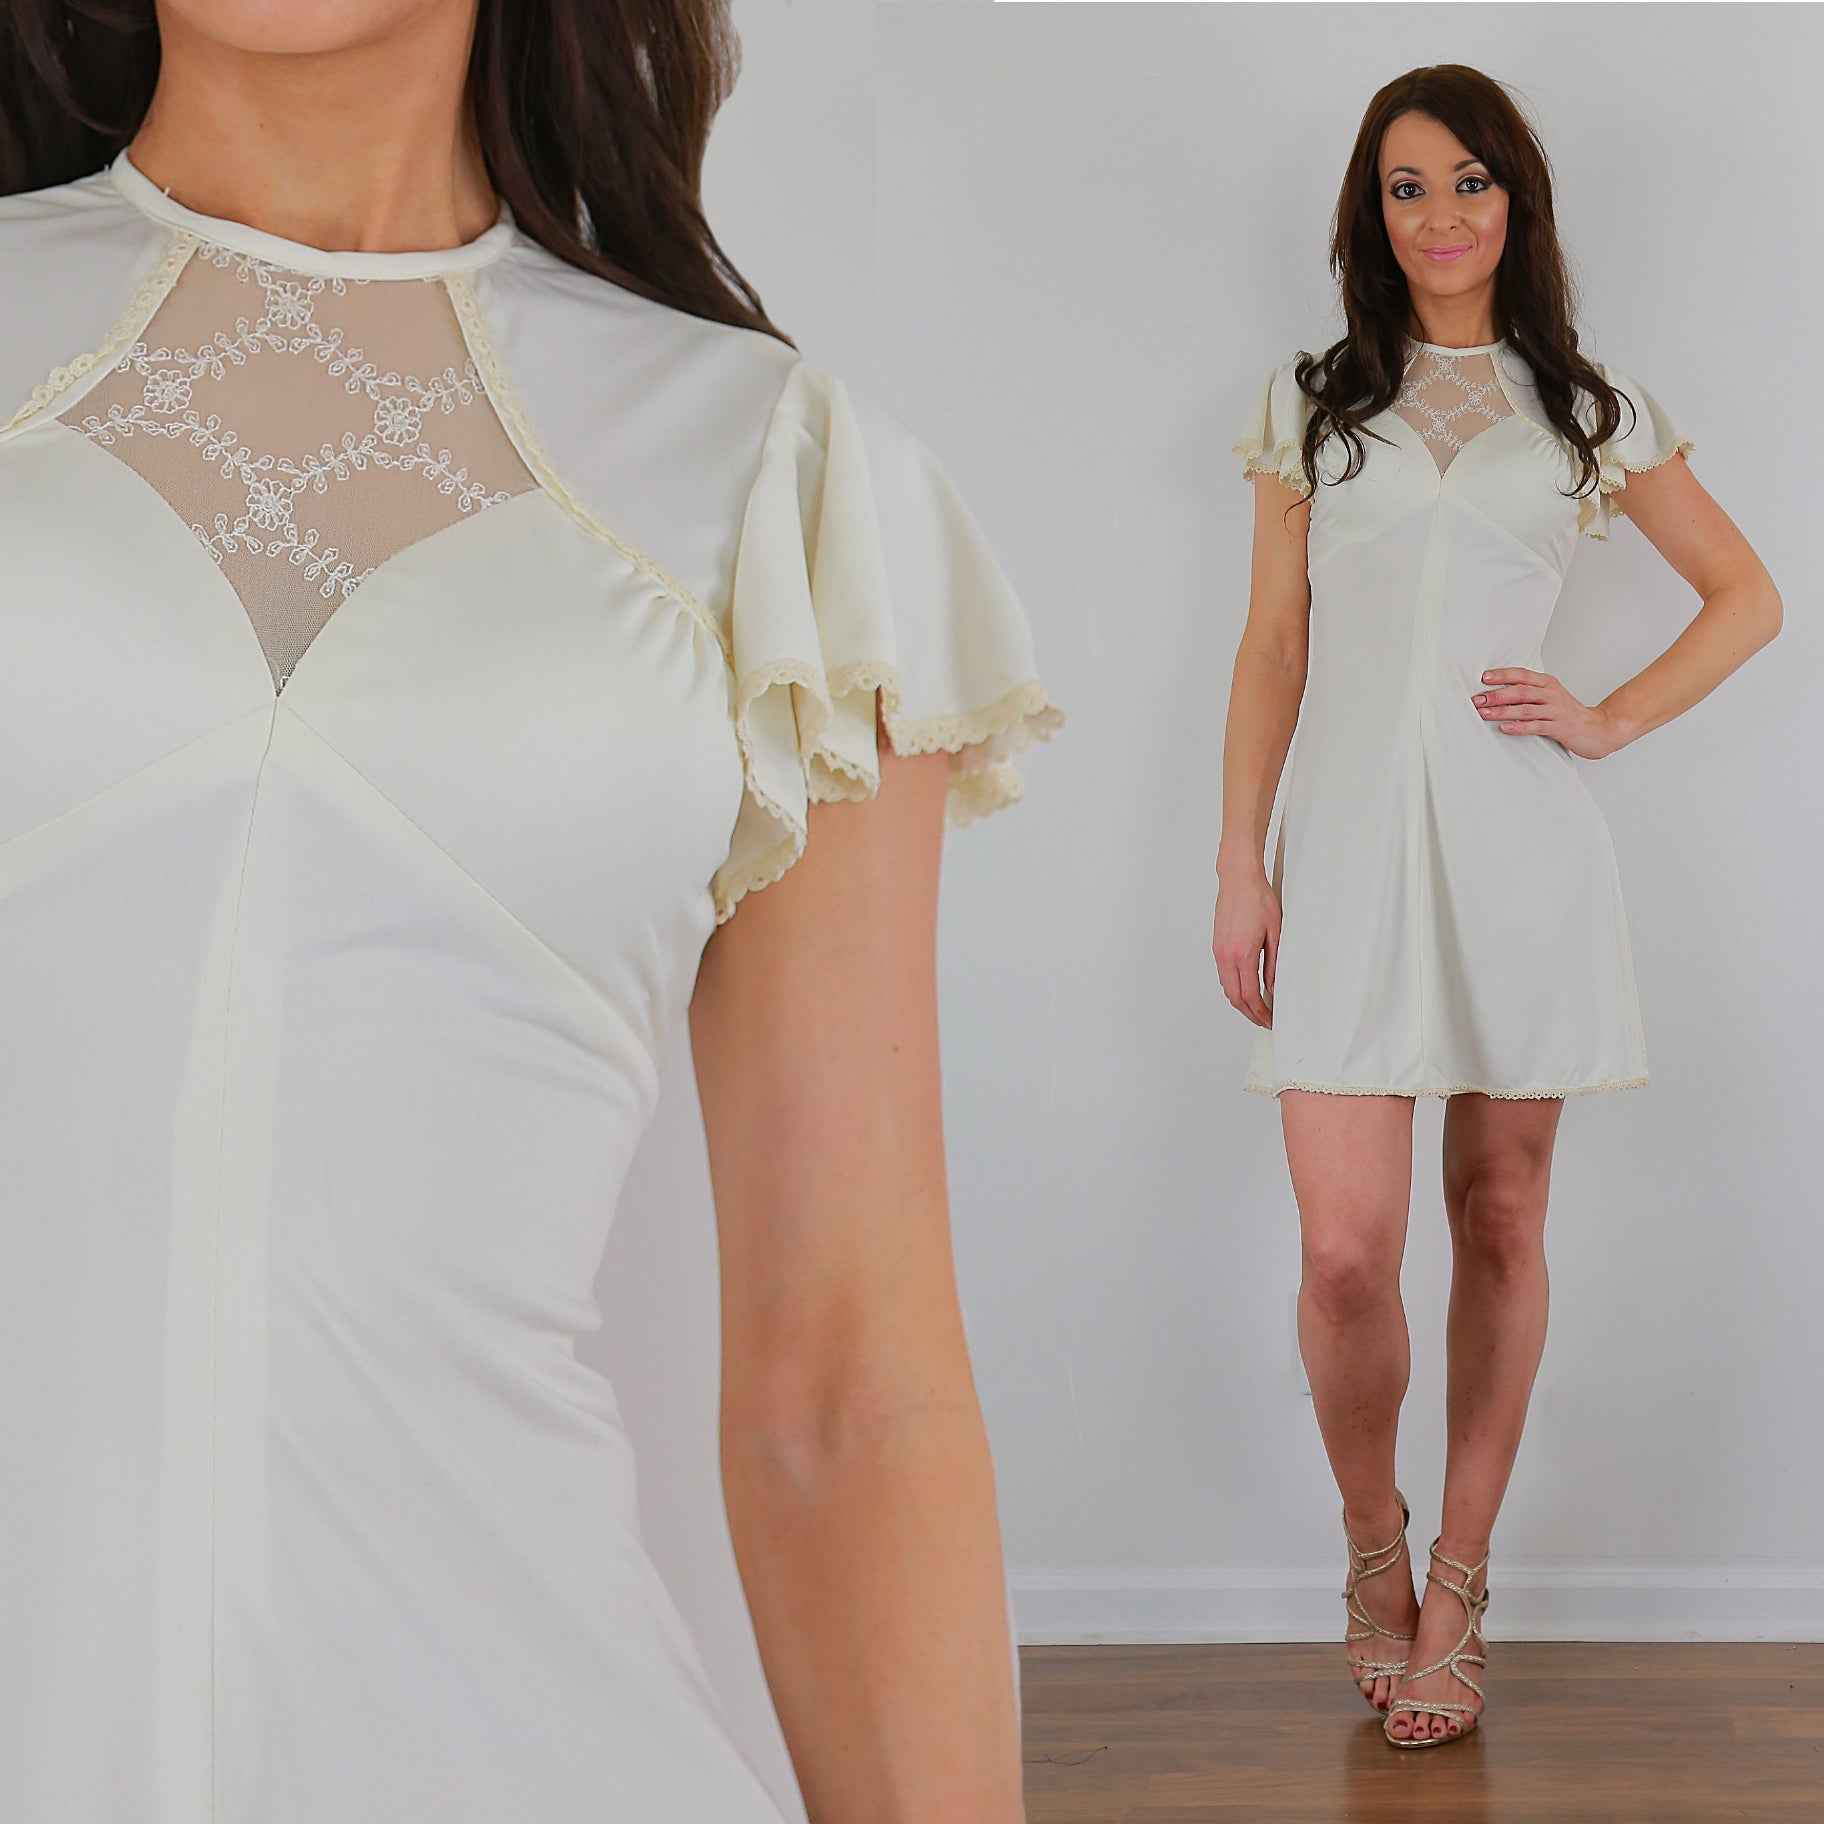 f543bf07afd1 White mini dress boho cream party dress vintage 70s sheer lace dress S